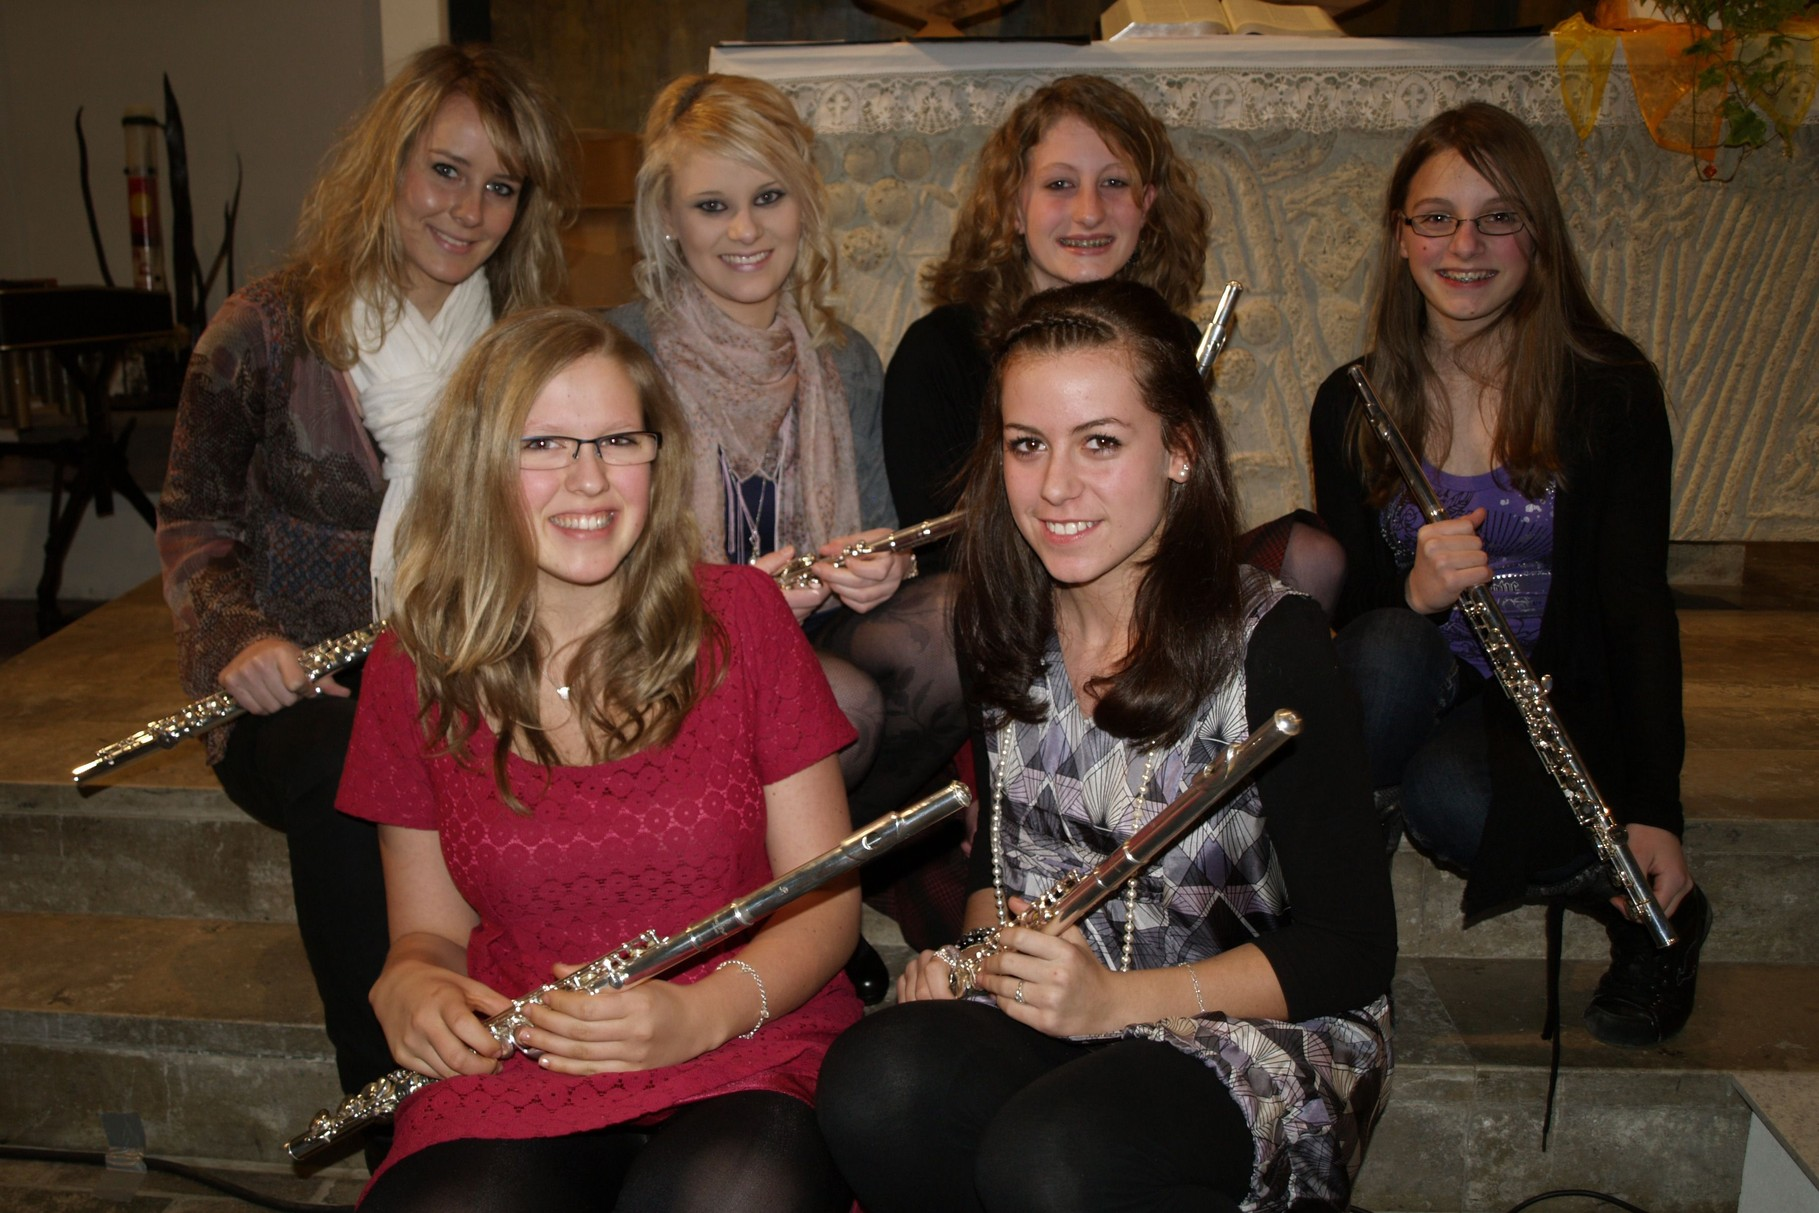 Girls4Flutes